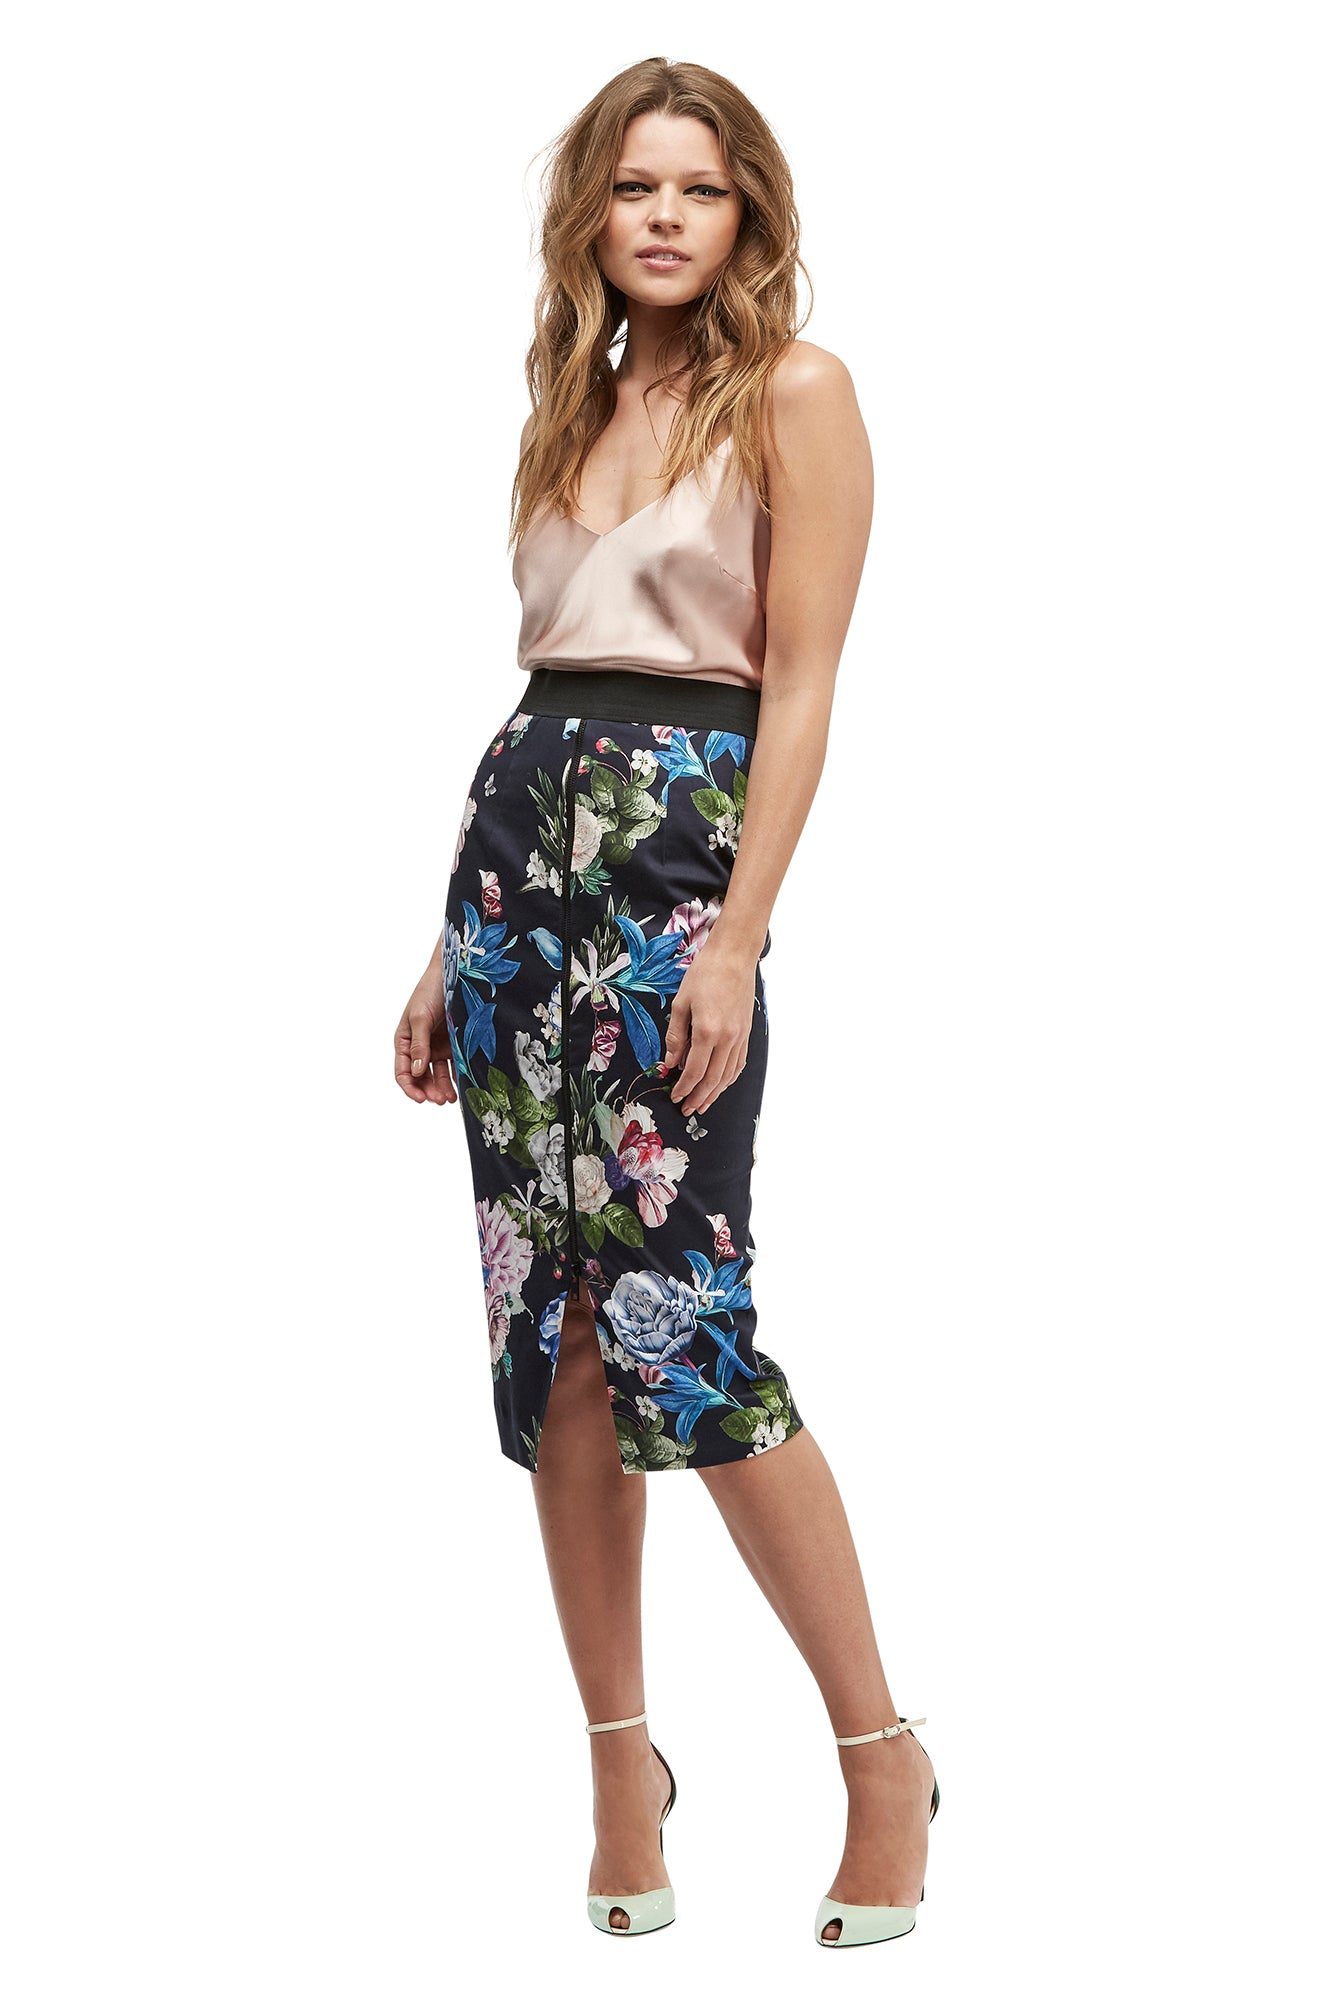 The Loulouthi skirt